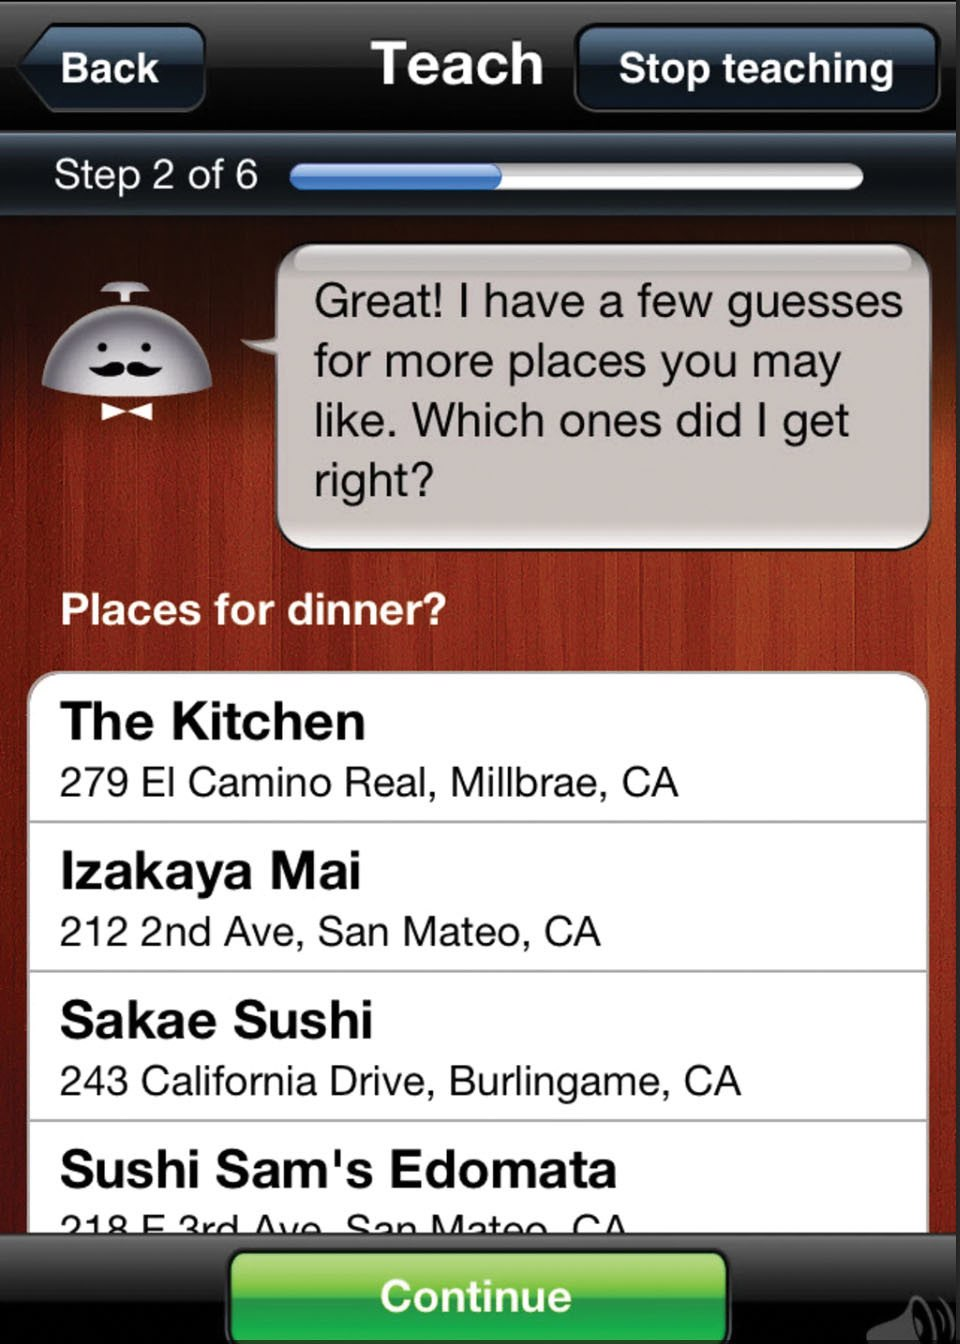 The Alfred app takes a guess at places the user might enjoy for dinner and asks if any of them are right.